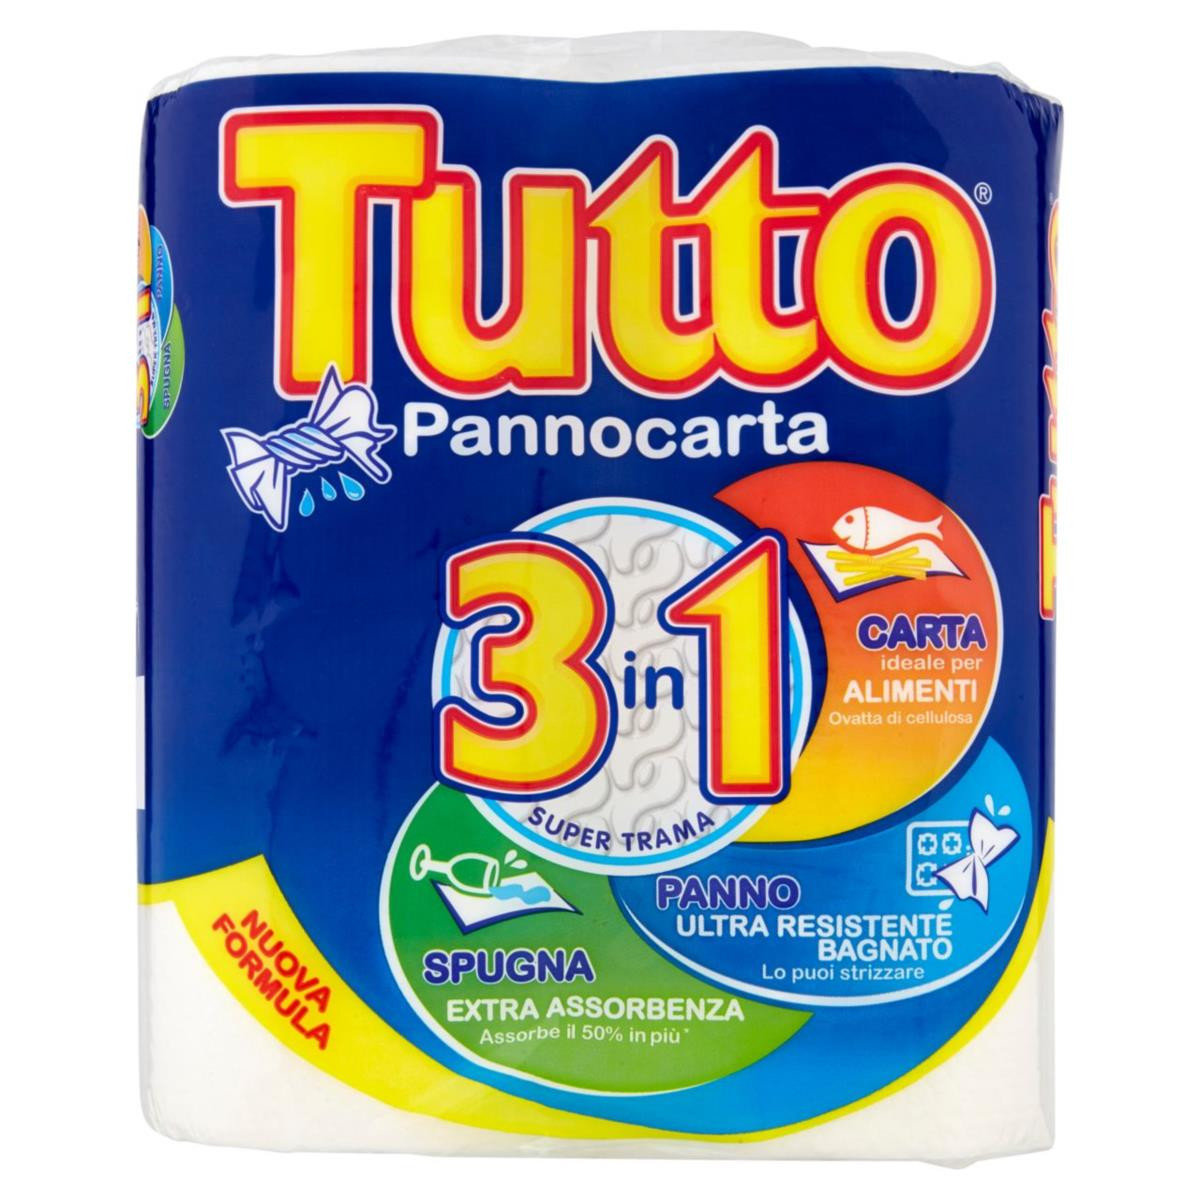 Carta Casa 3 In 1 Tutto Pannocarta 2 pz